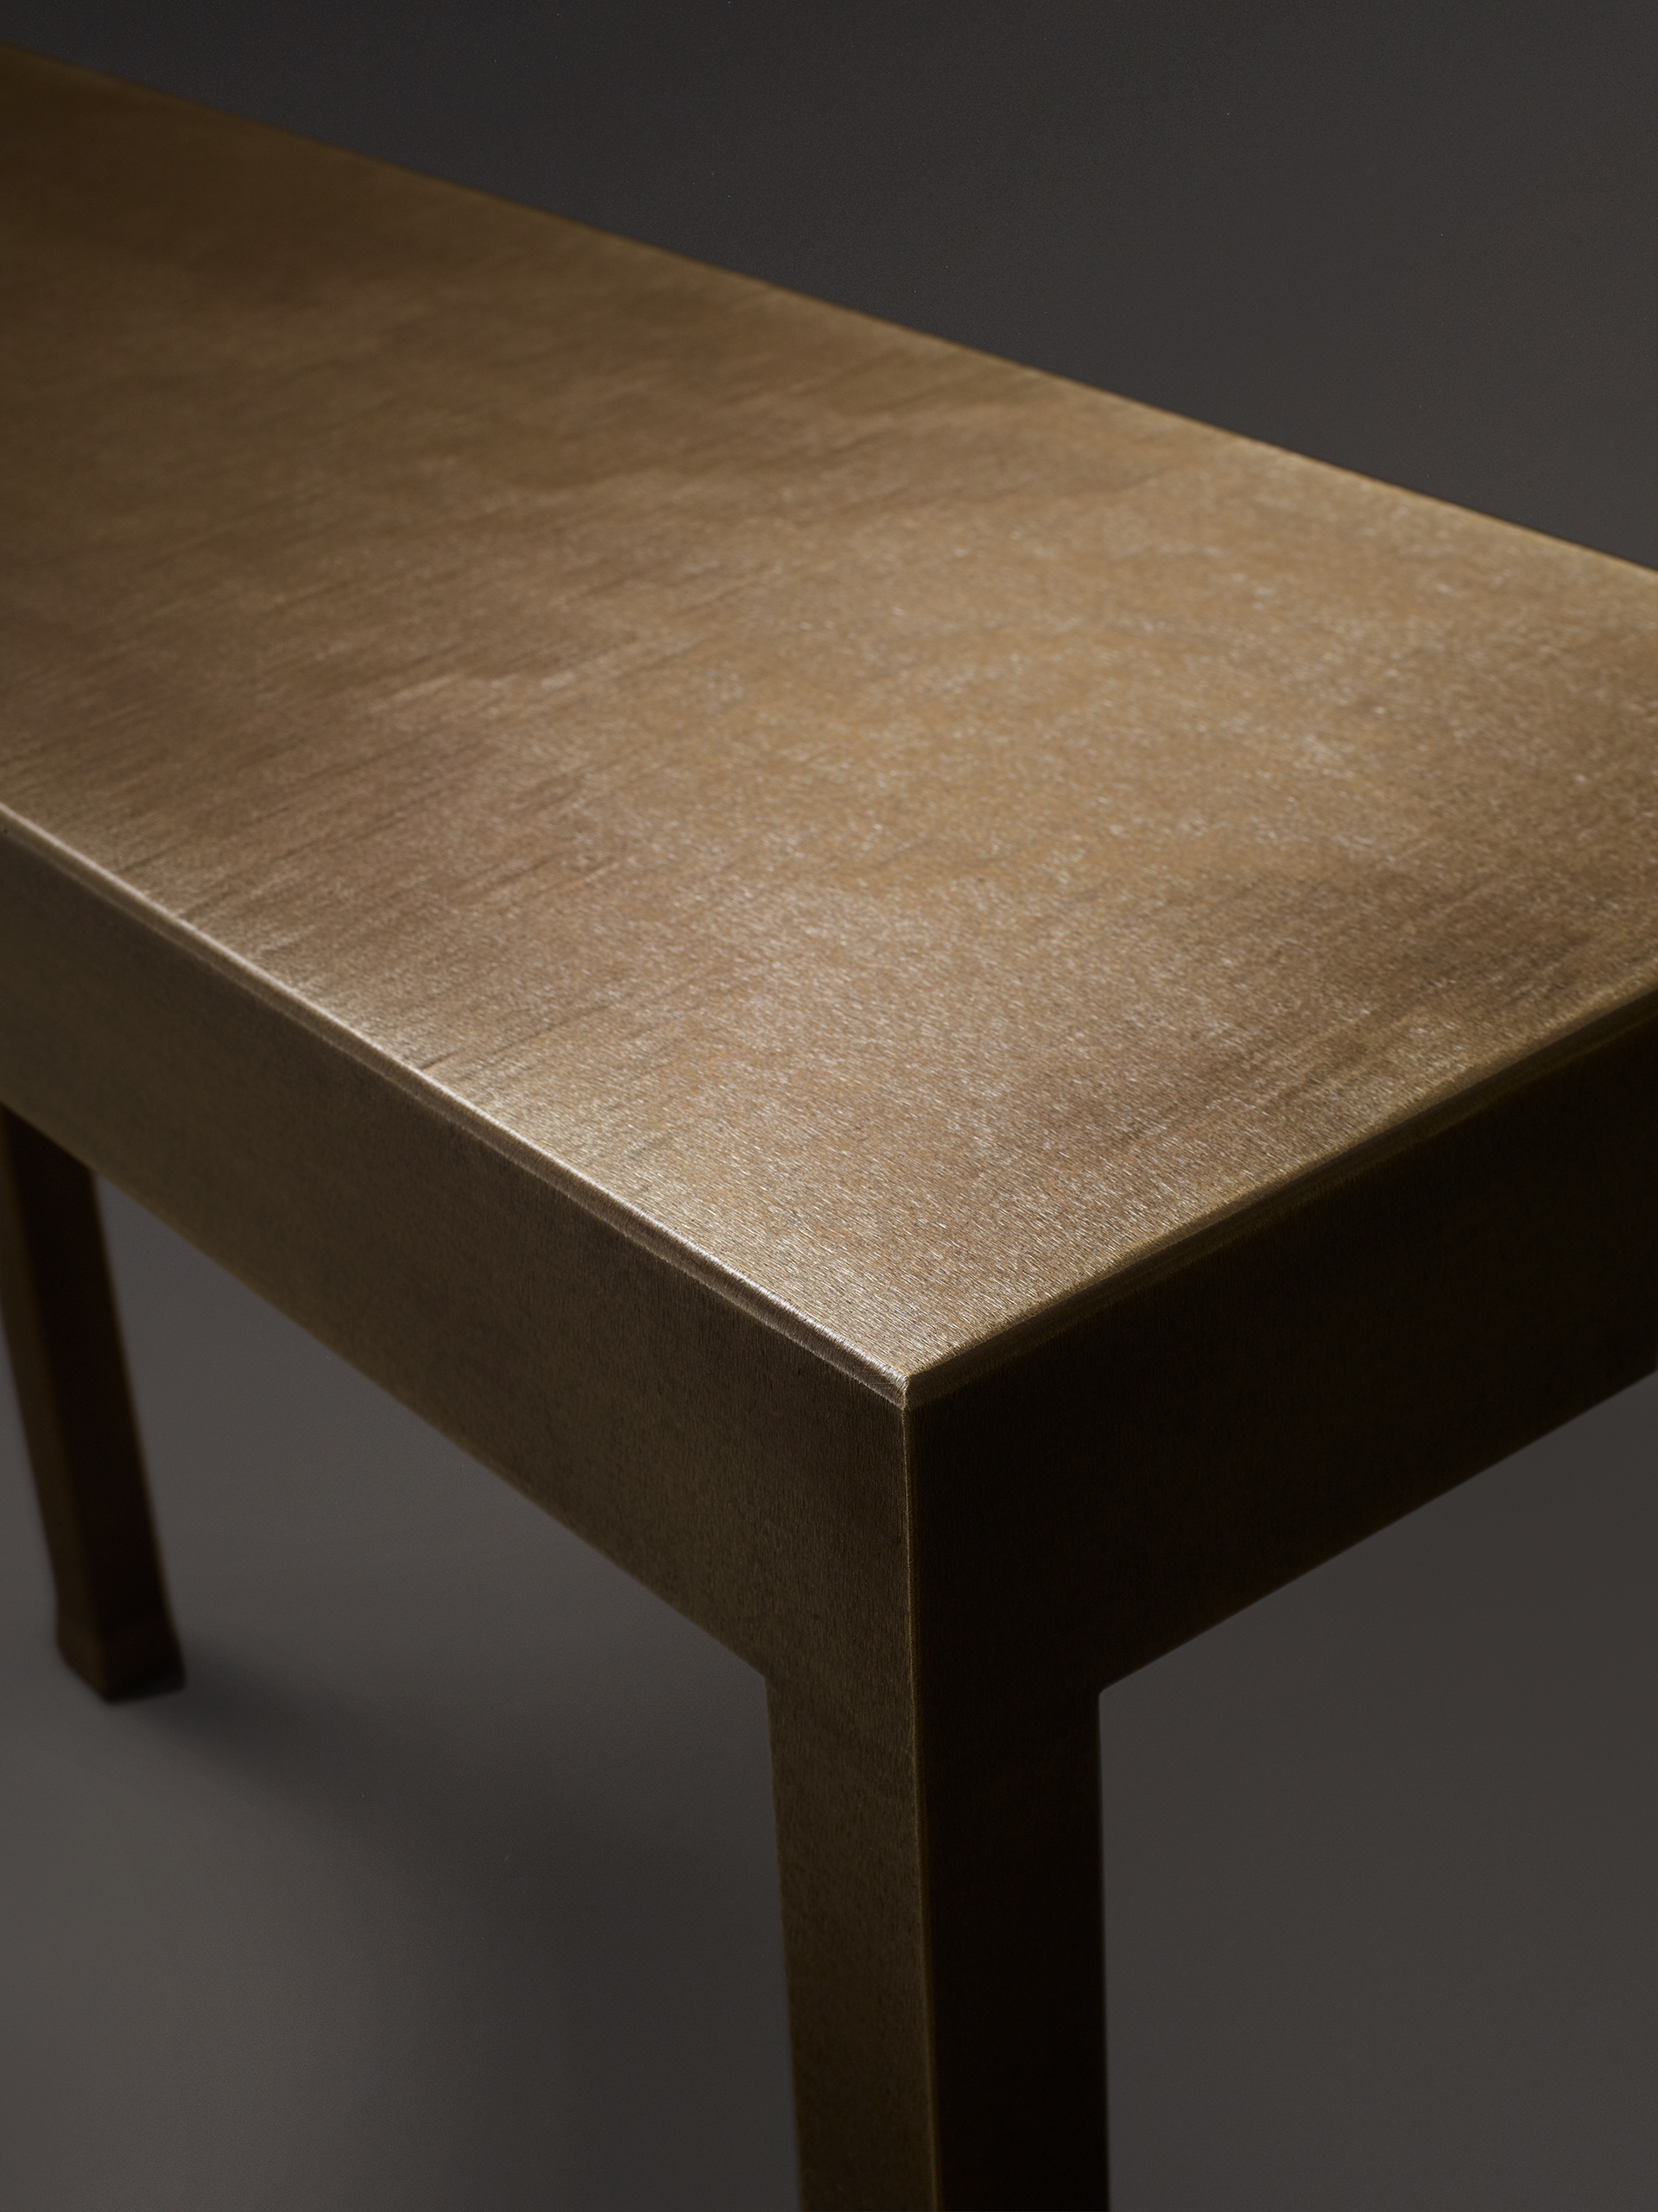 Detail of Gong, a bronze console from Promemoria's catalogue | Promemoria